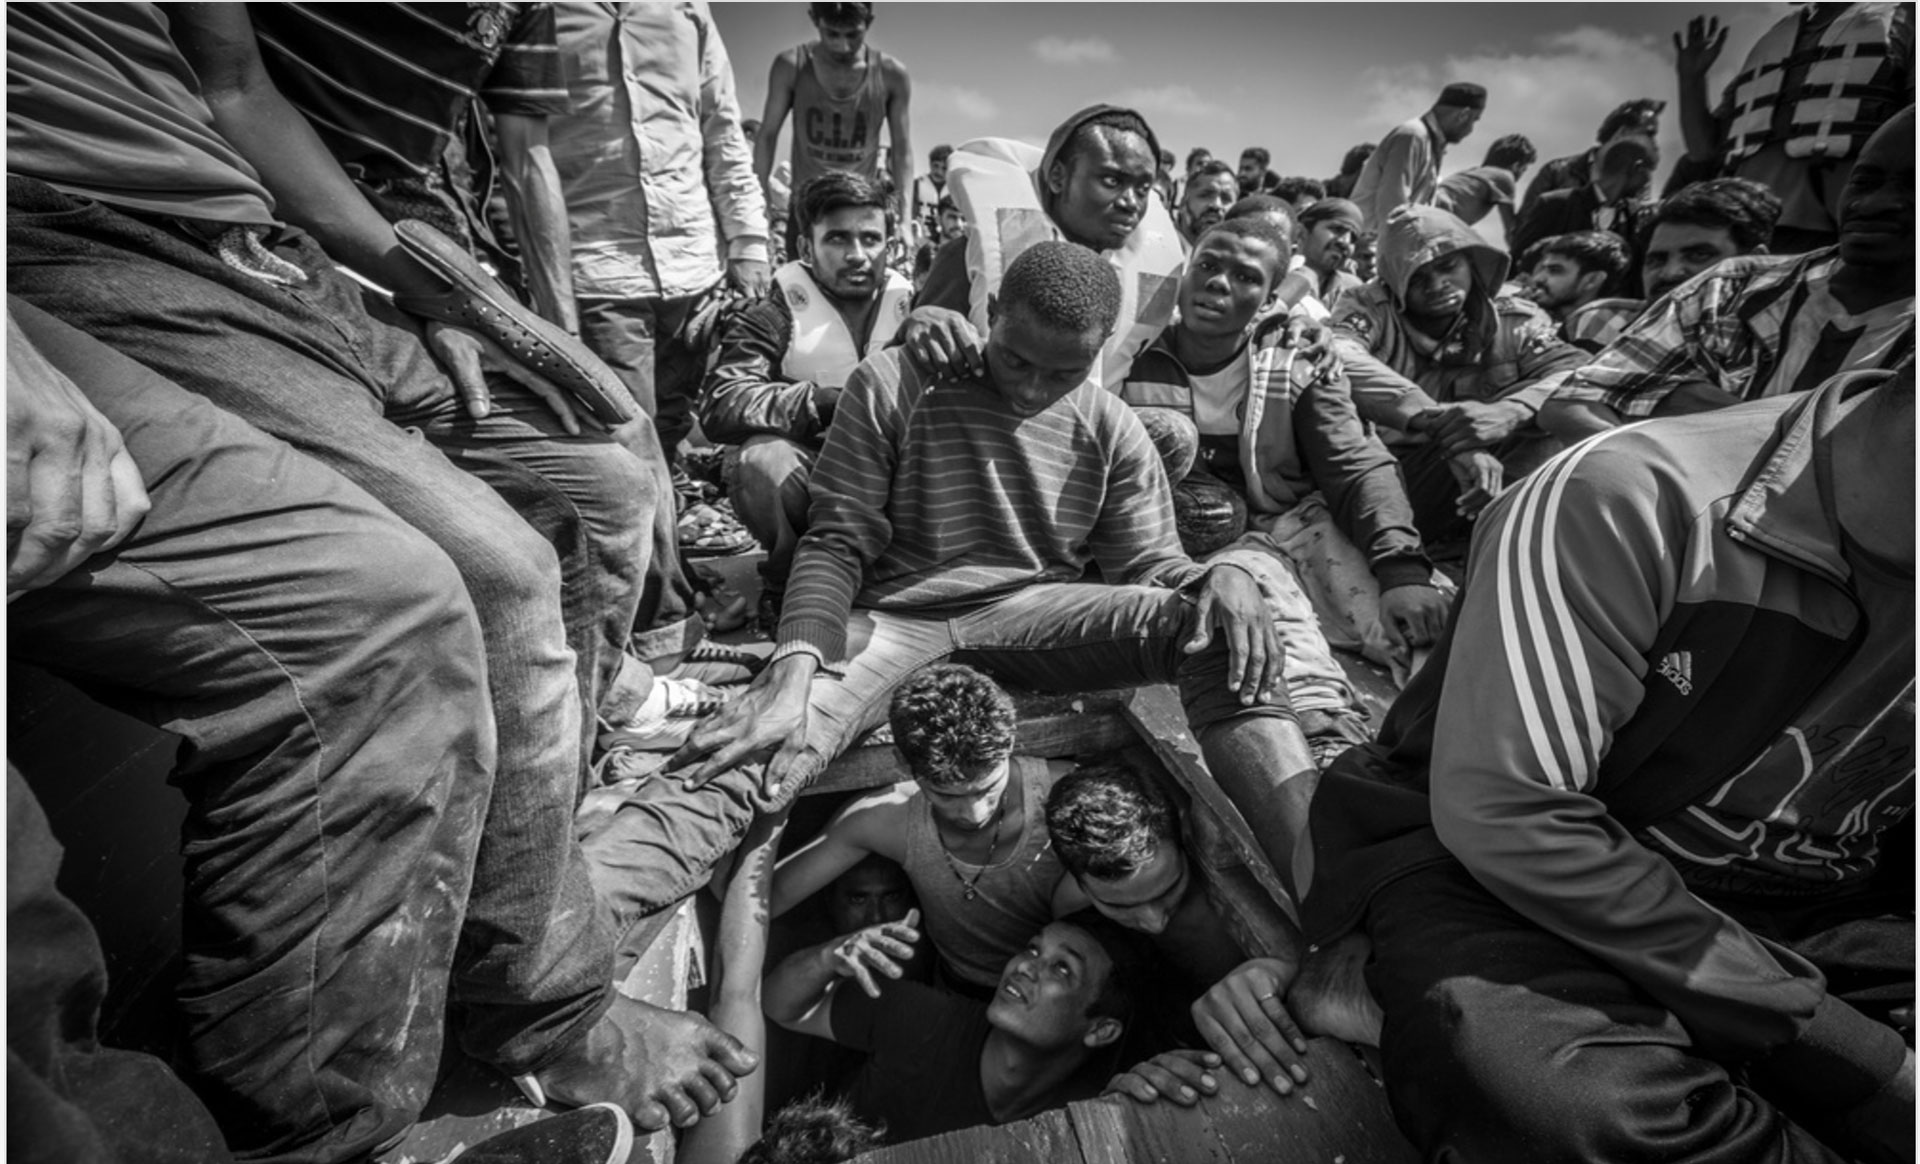 Magnum Photography Awards 2017. Image © Jason Florio - Photojournalism Winner. Migrants come from below deck on overcrowded smugglers boat